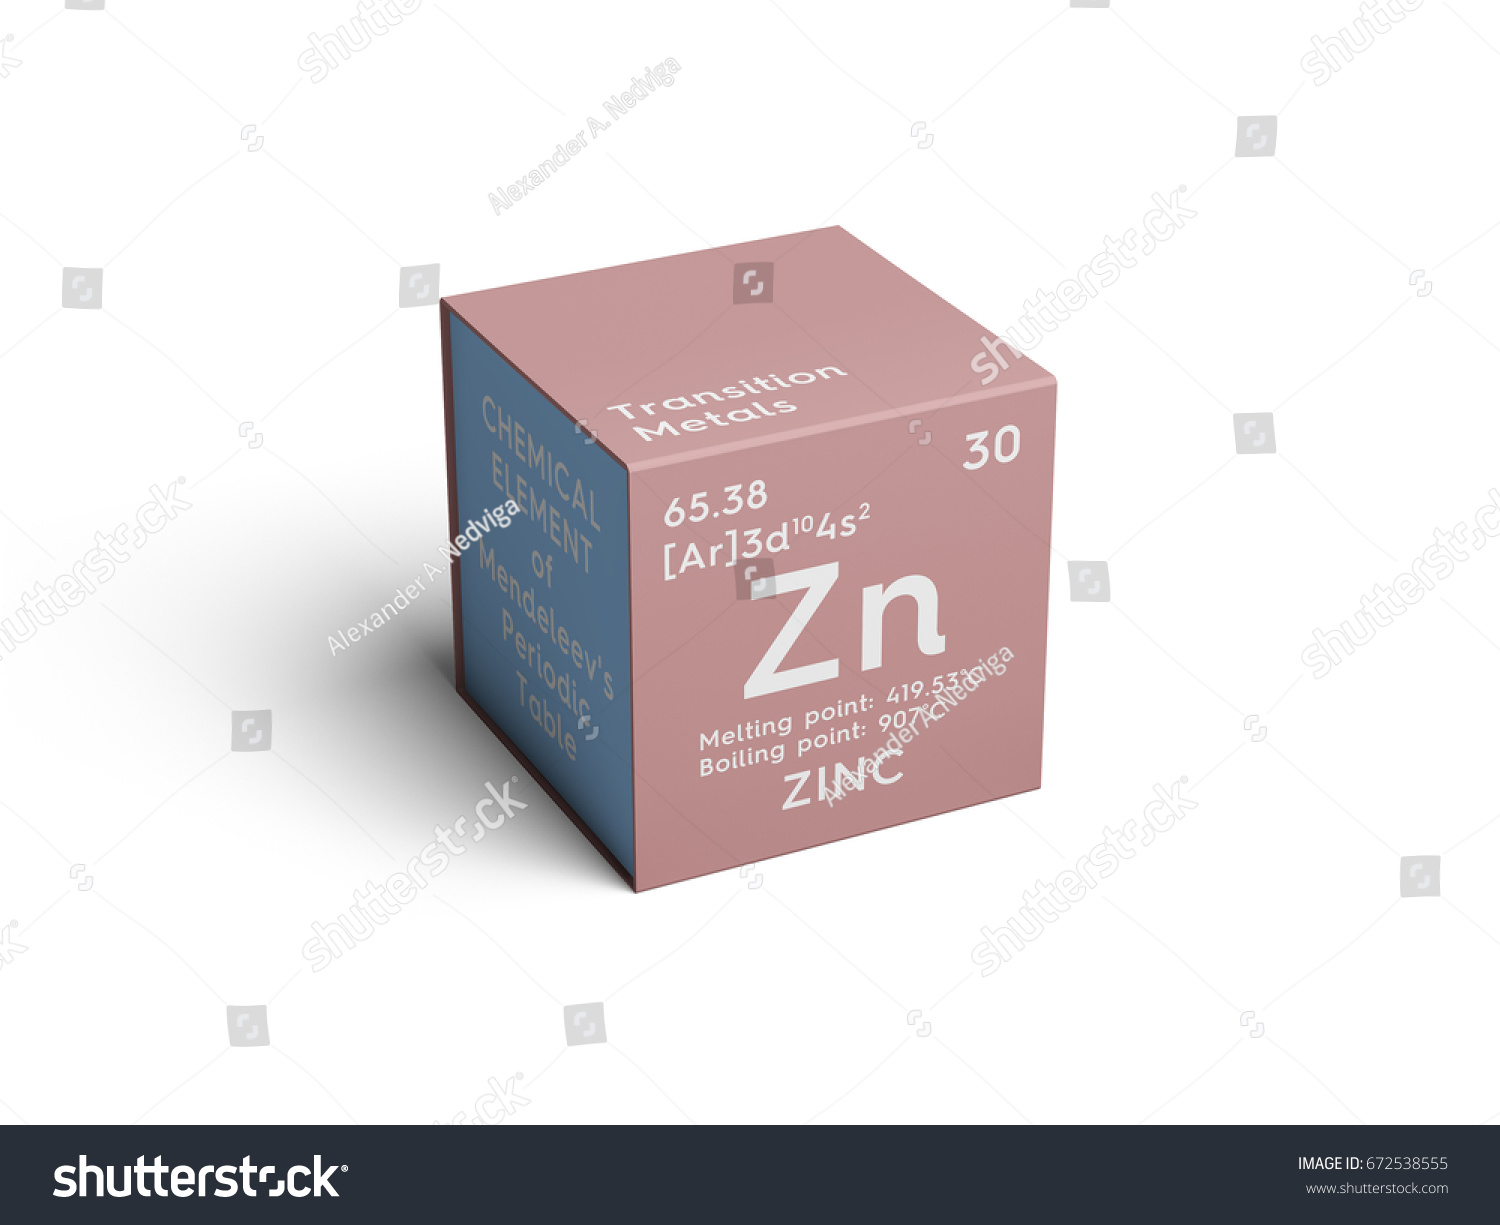 Zinc in periodic table gallery periodic table images periodic table zinc choice image periodic table images periodic table zinc choice image periodic table images gamestrikefo Image collections